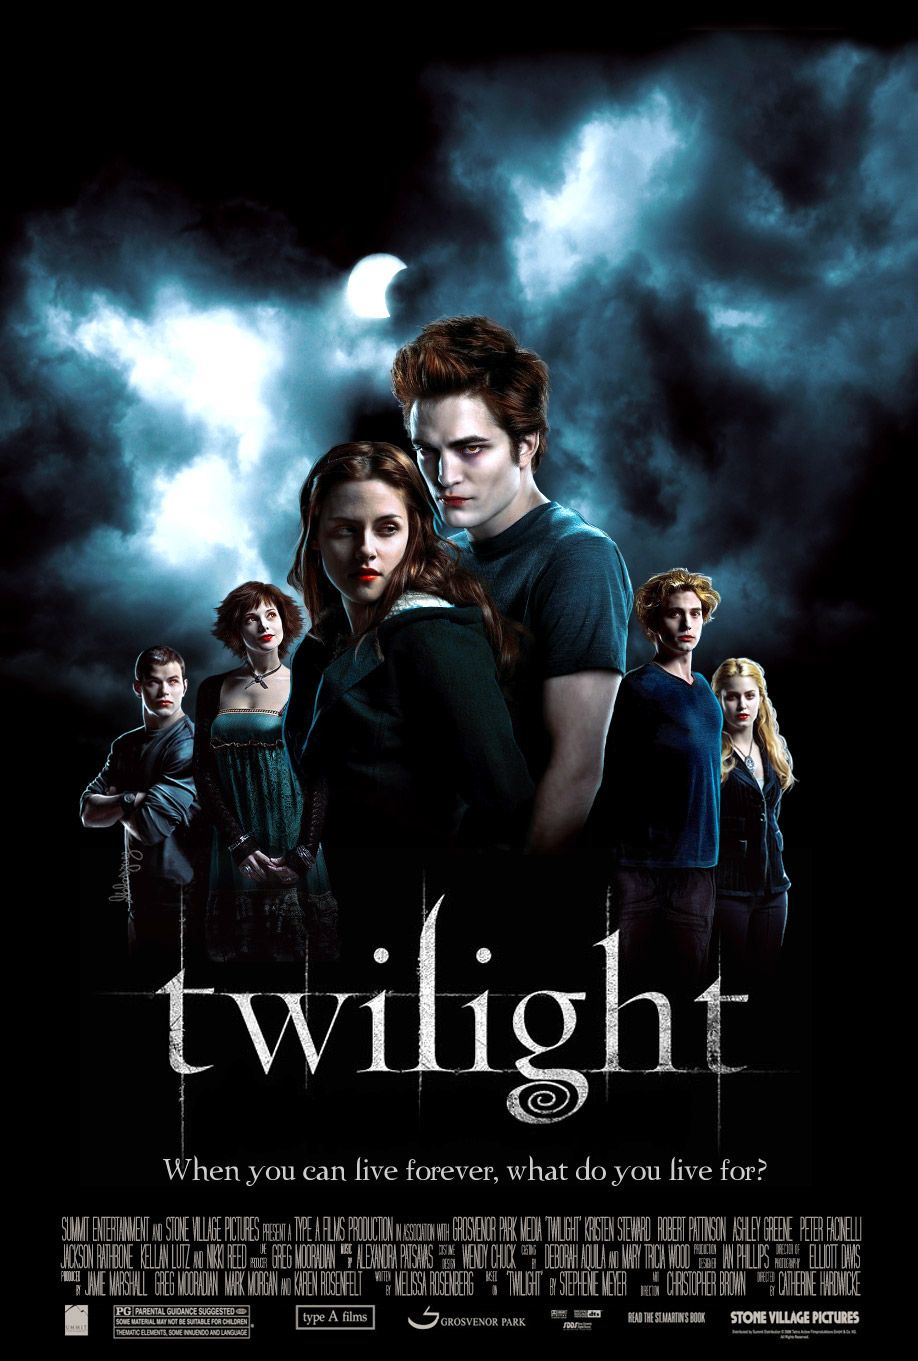 Resulta ng larawan para sa twilight movie poster